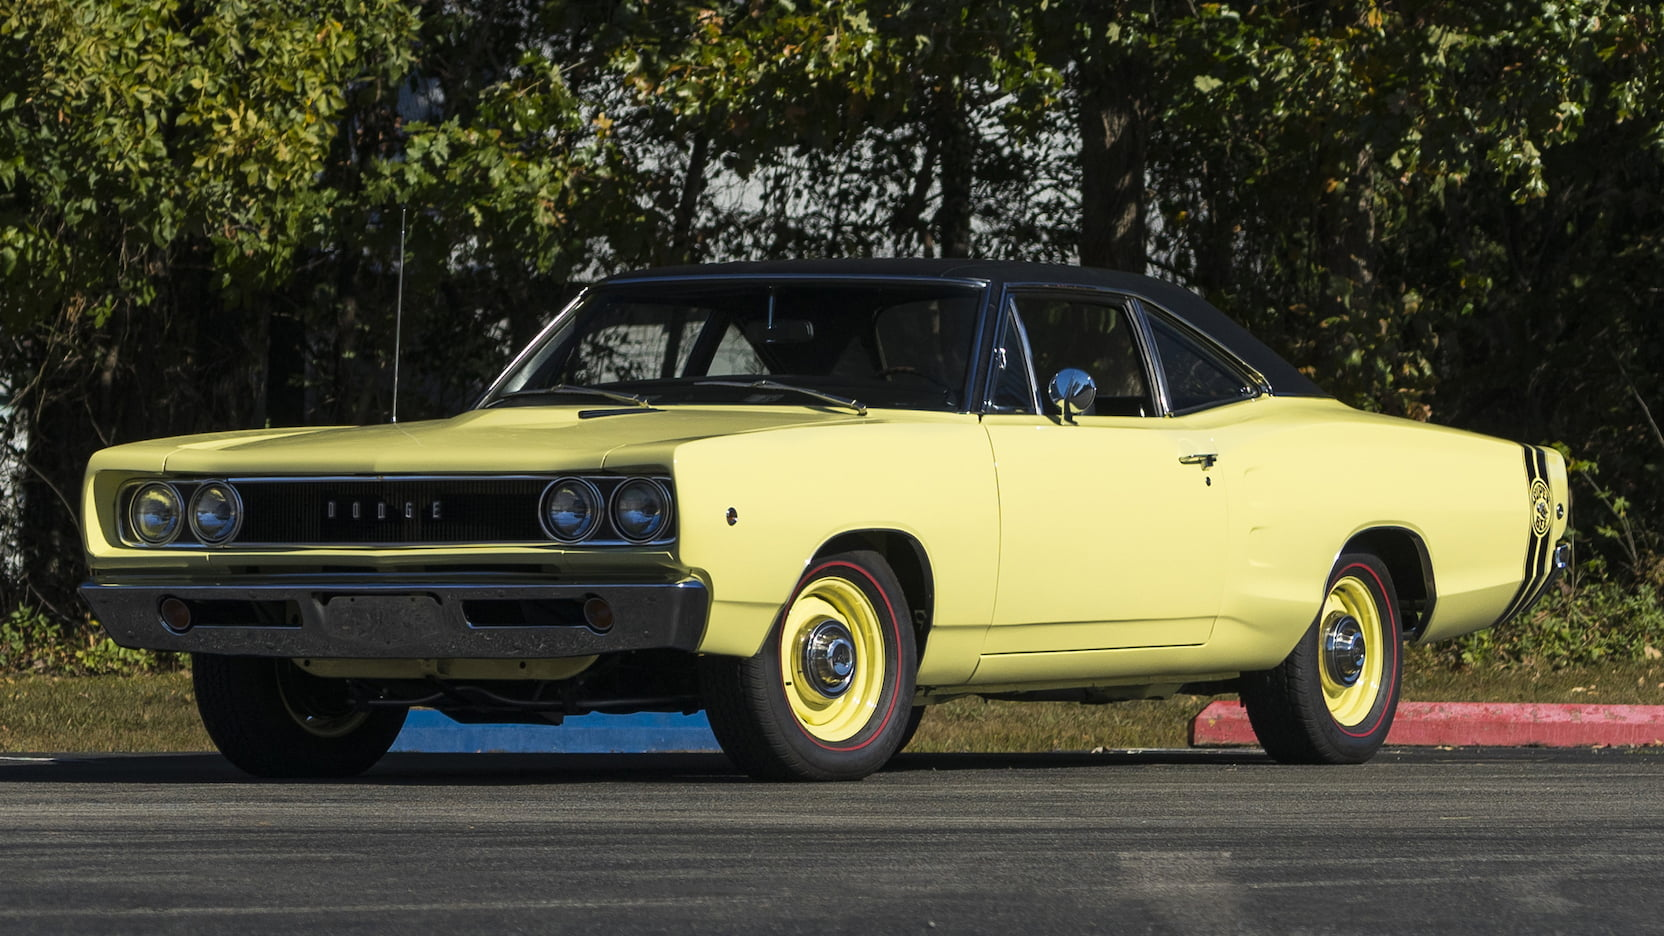 1968 Dodge Hemi Super Bee F104.1 Kissimmee 2018